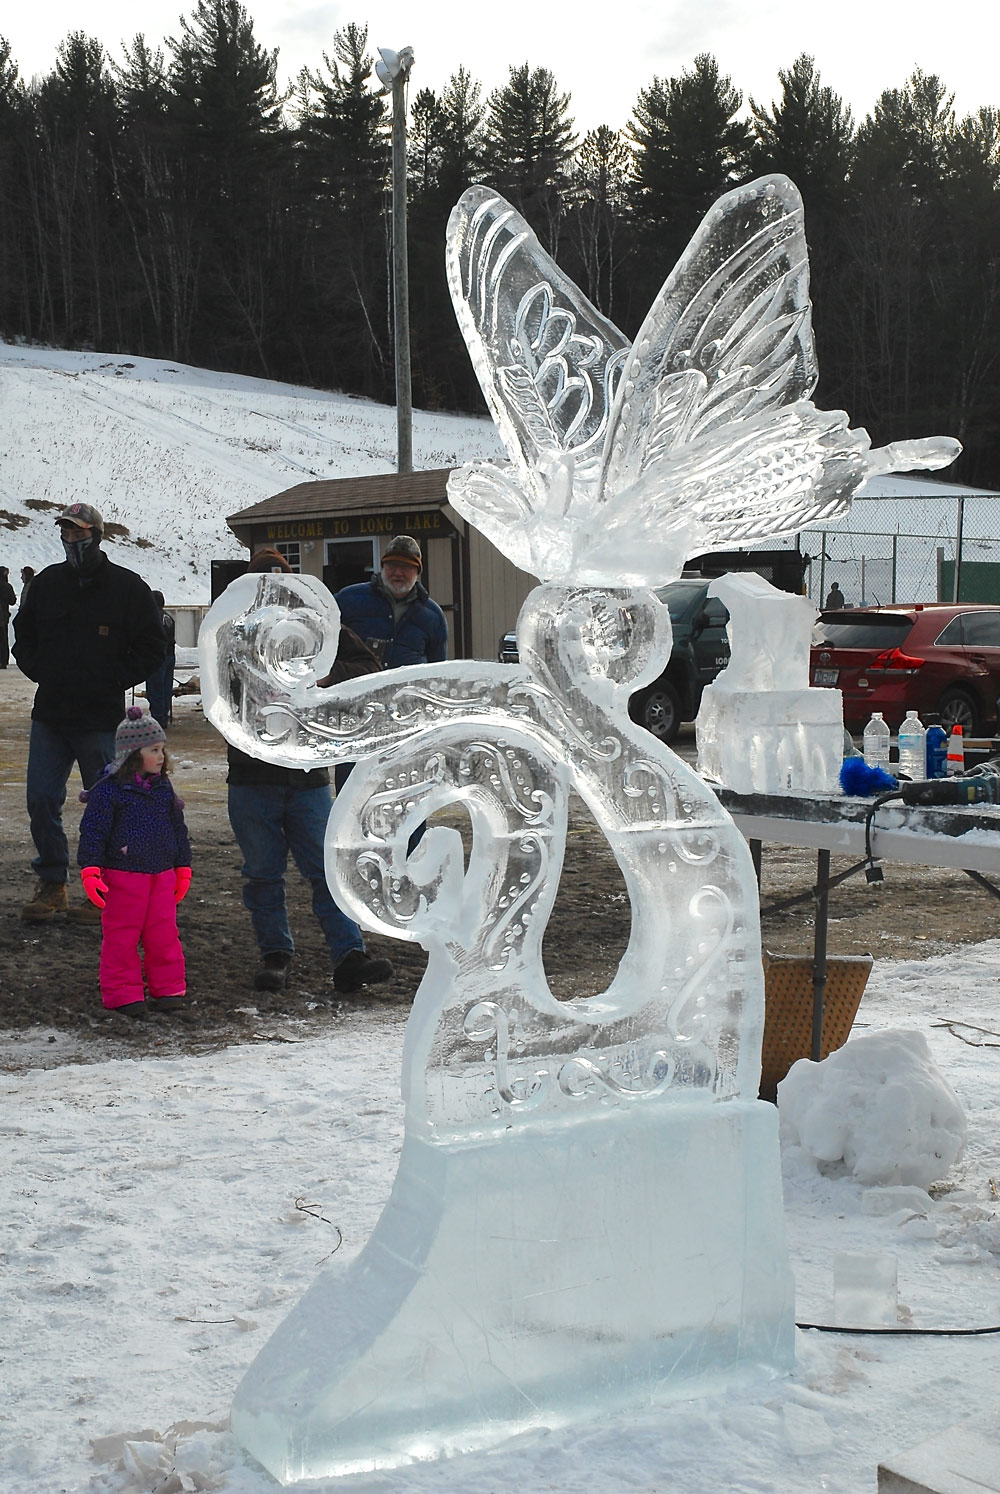 Ice Carving Demonstrations throughout the day